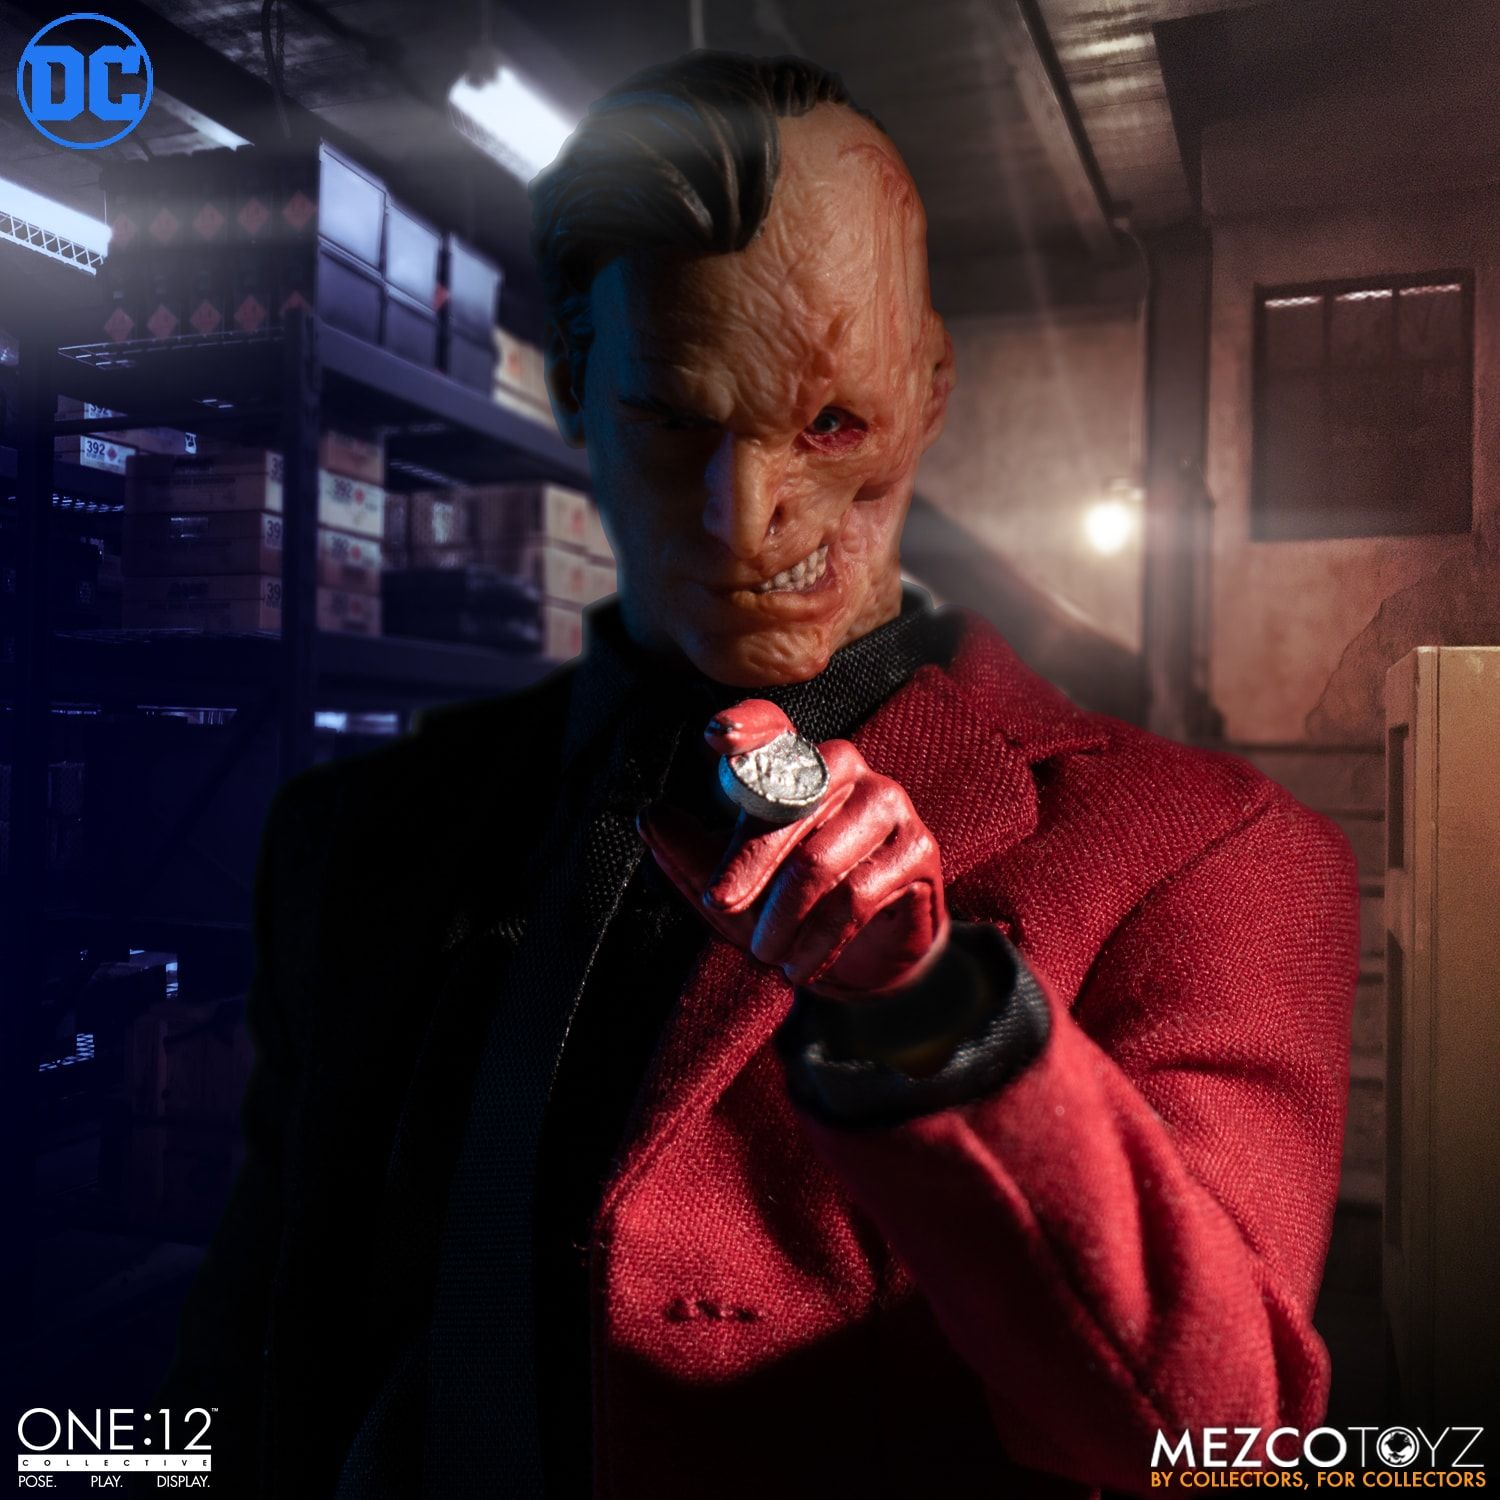 Pre-Order Mezco One:12 Collective DC Comics Two-Face Figure